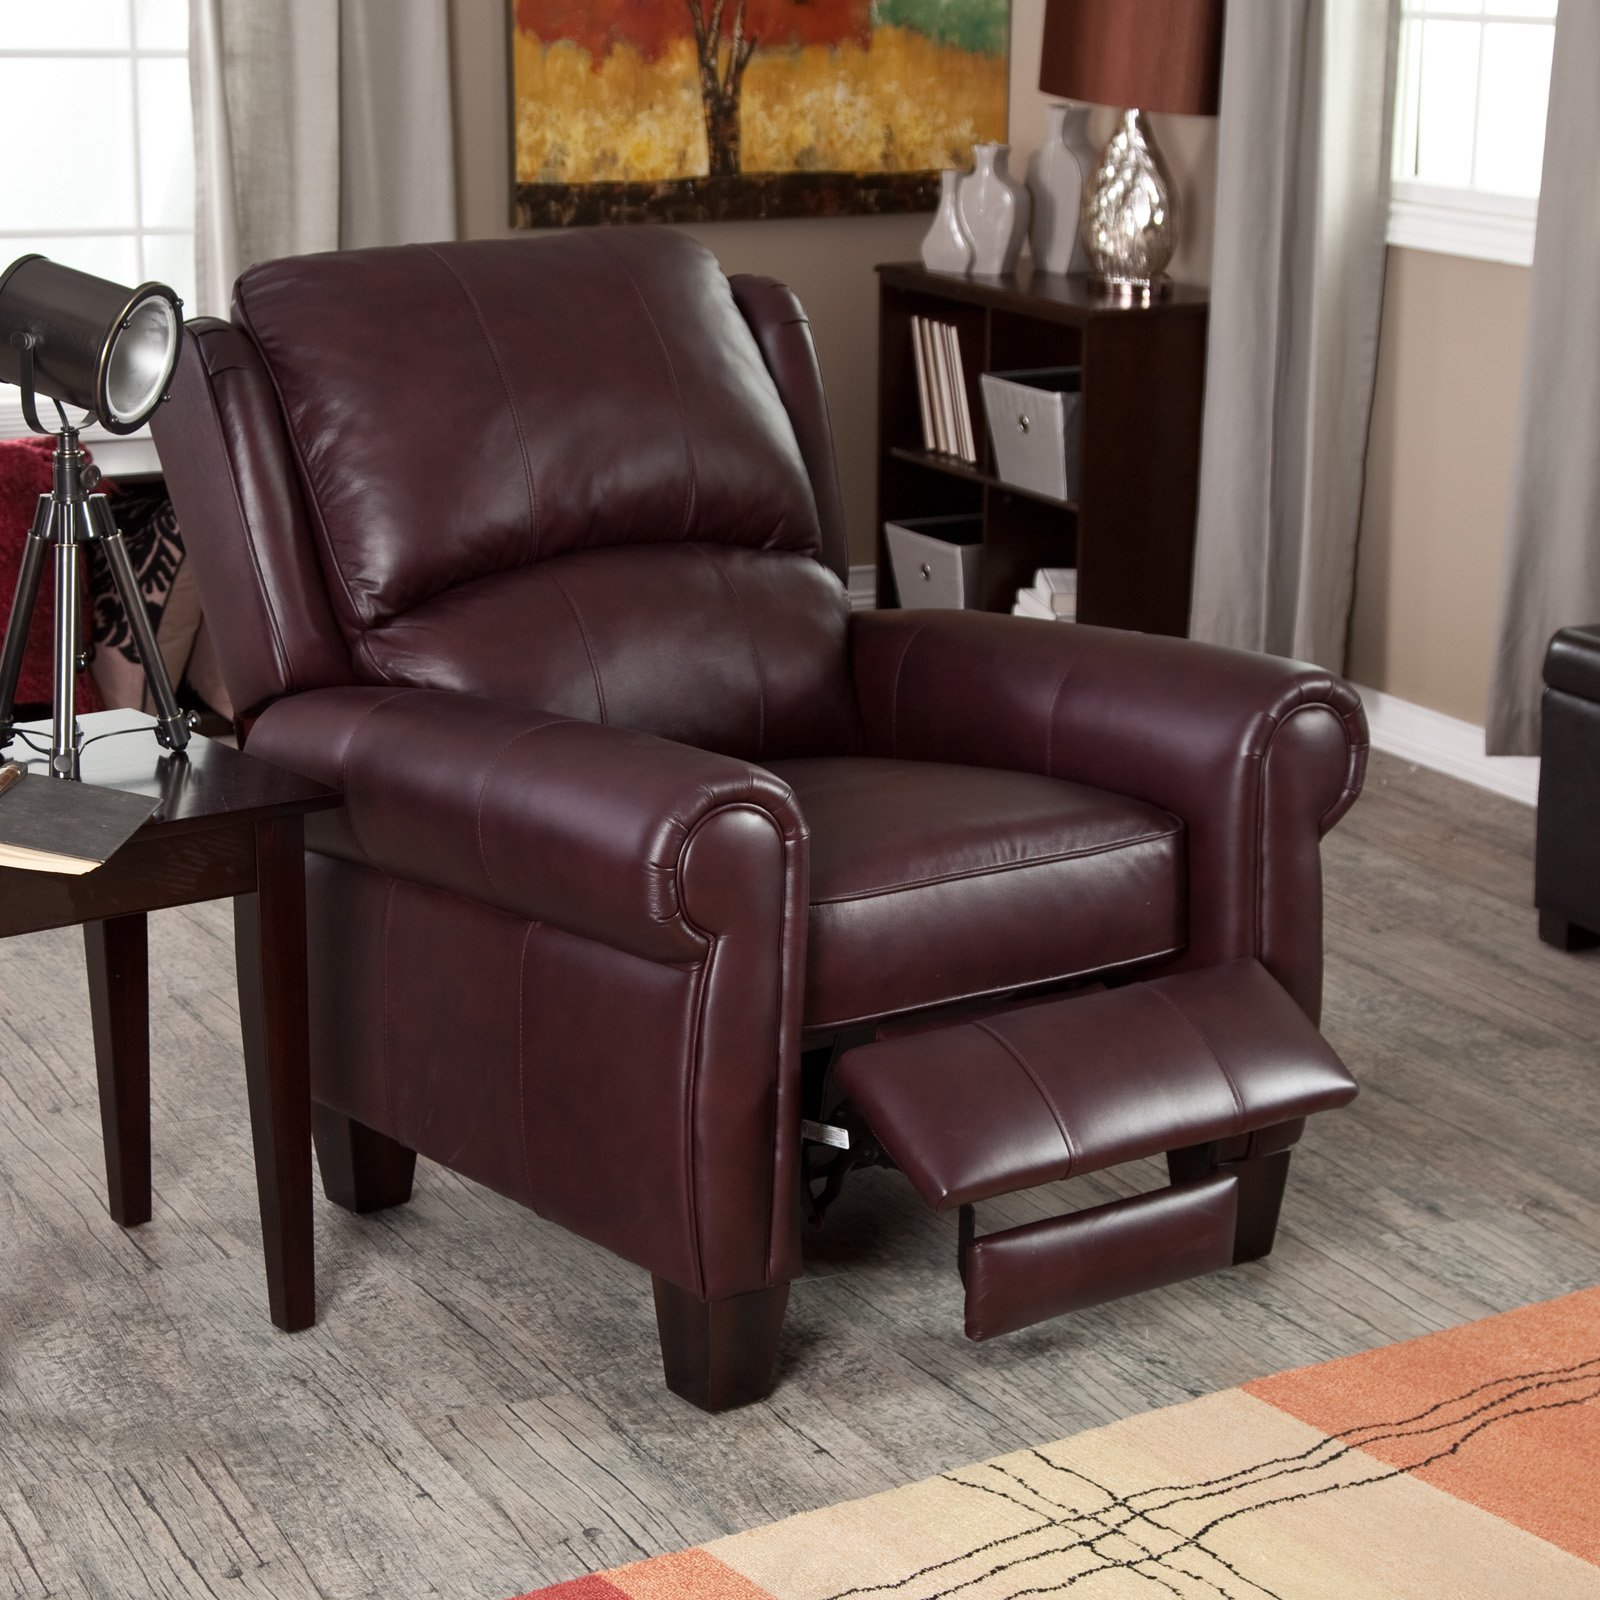 Leather Recliner Chair Home Burgundy Push Back Wingback